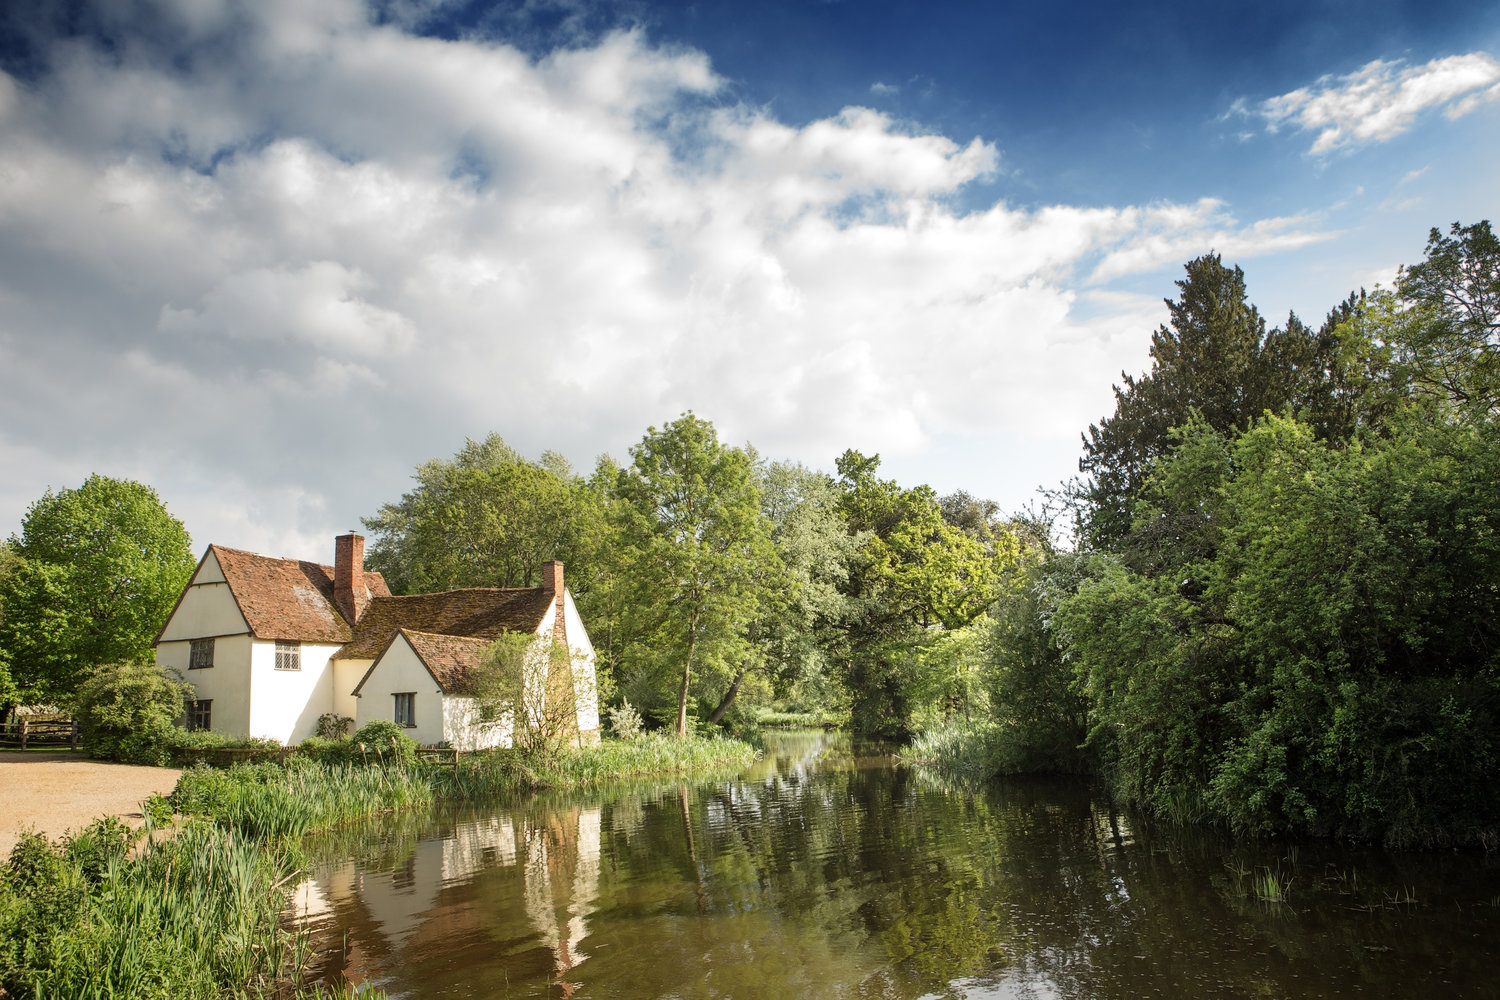 Bridge Cottage in Flatford - the inspiration for landscape artist John Constable's The Hay Wain and The Mill Stream